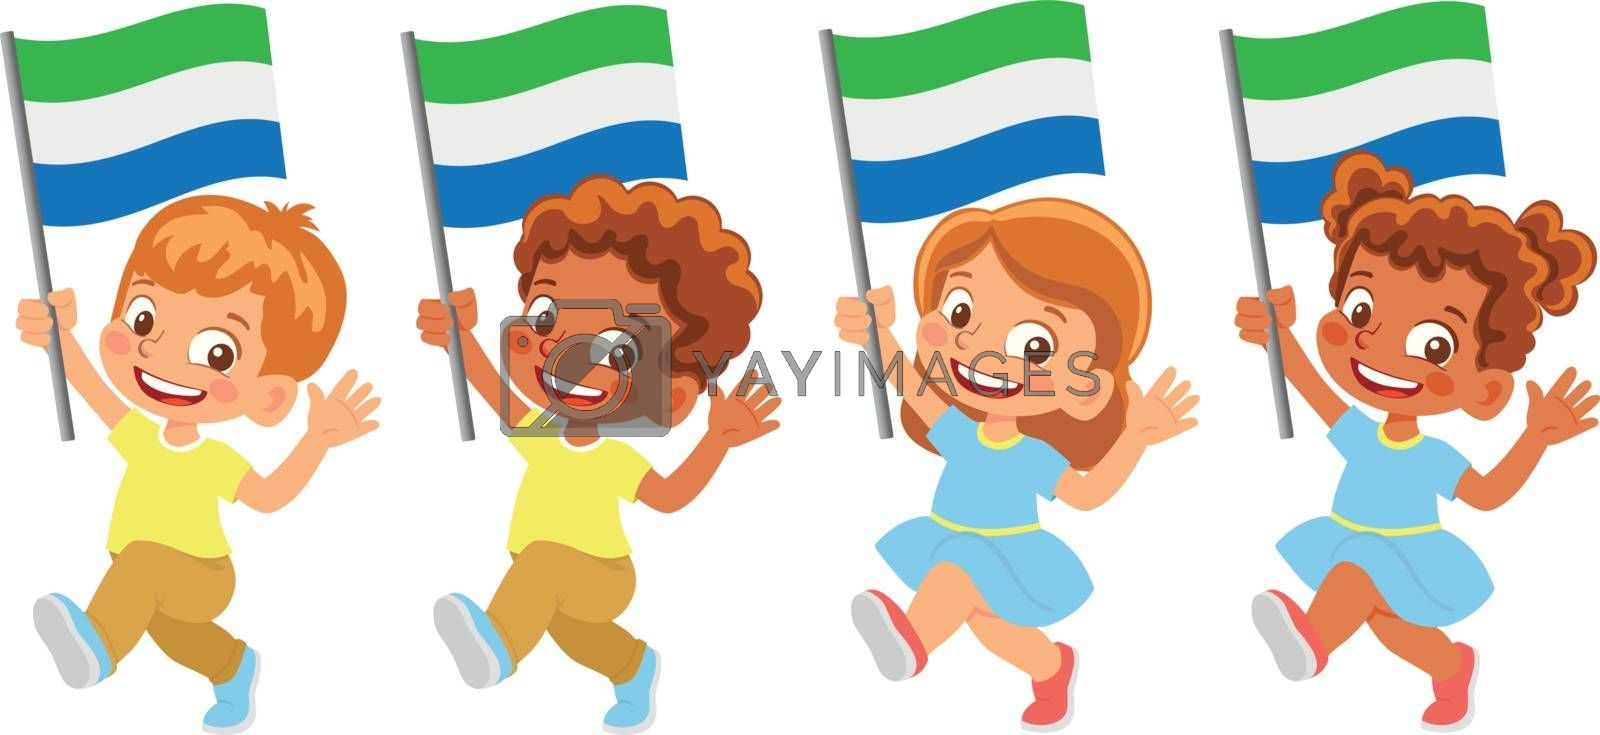 Sierra leone flag in hand Children holding flag. National flag of Sierra leone vector